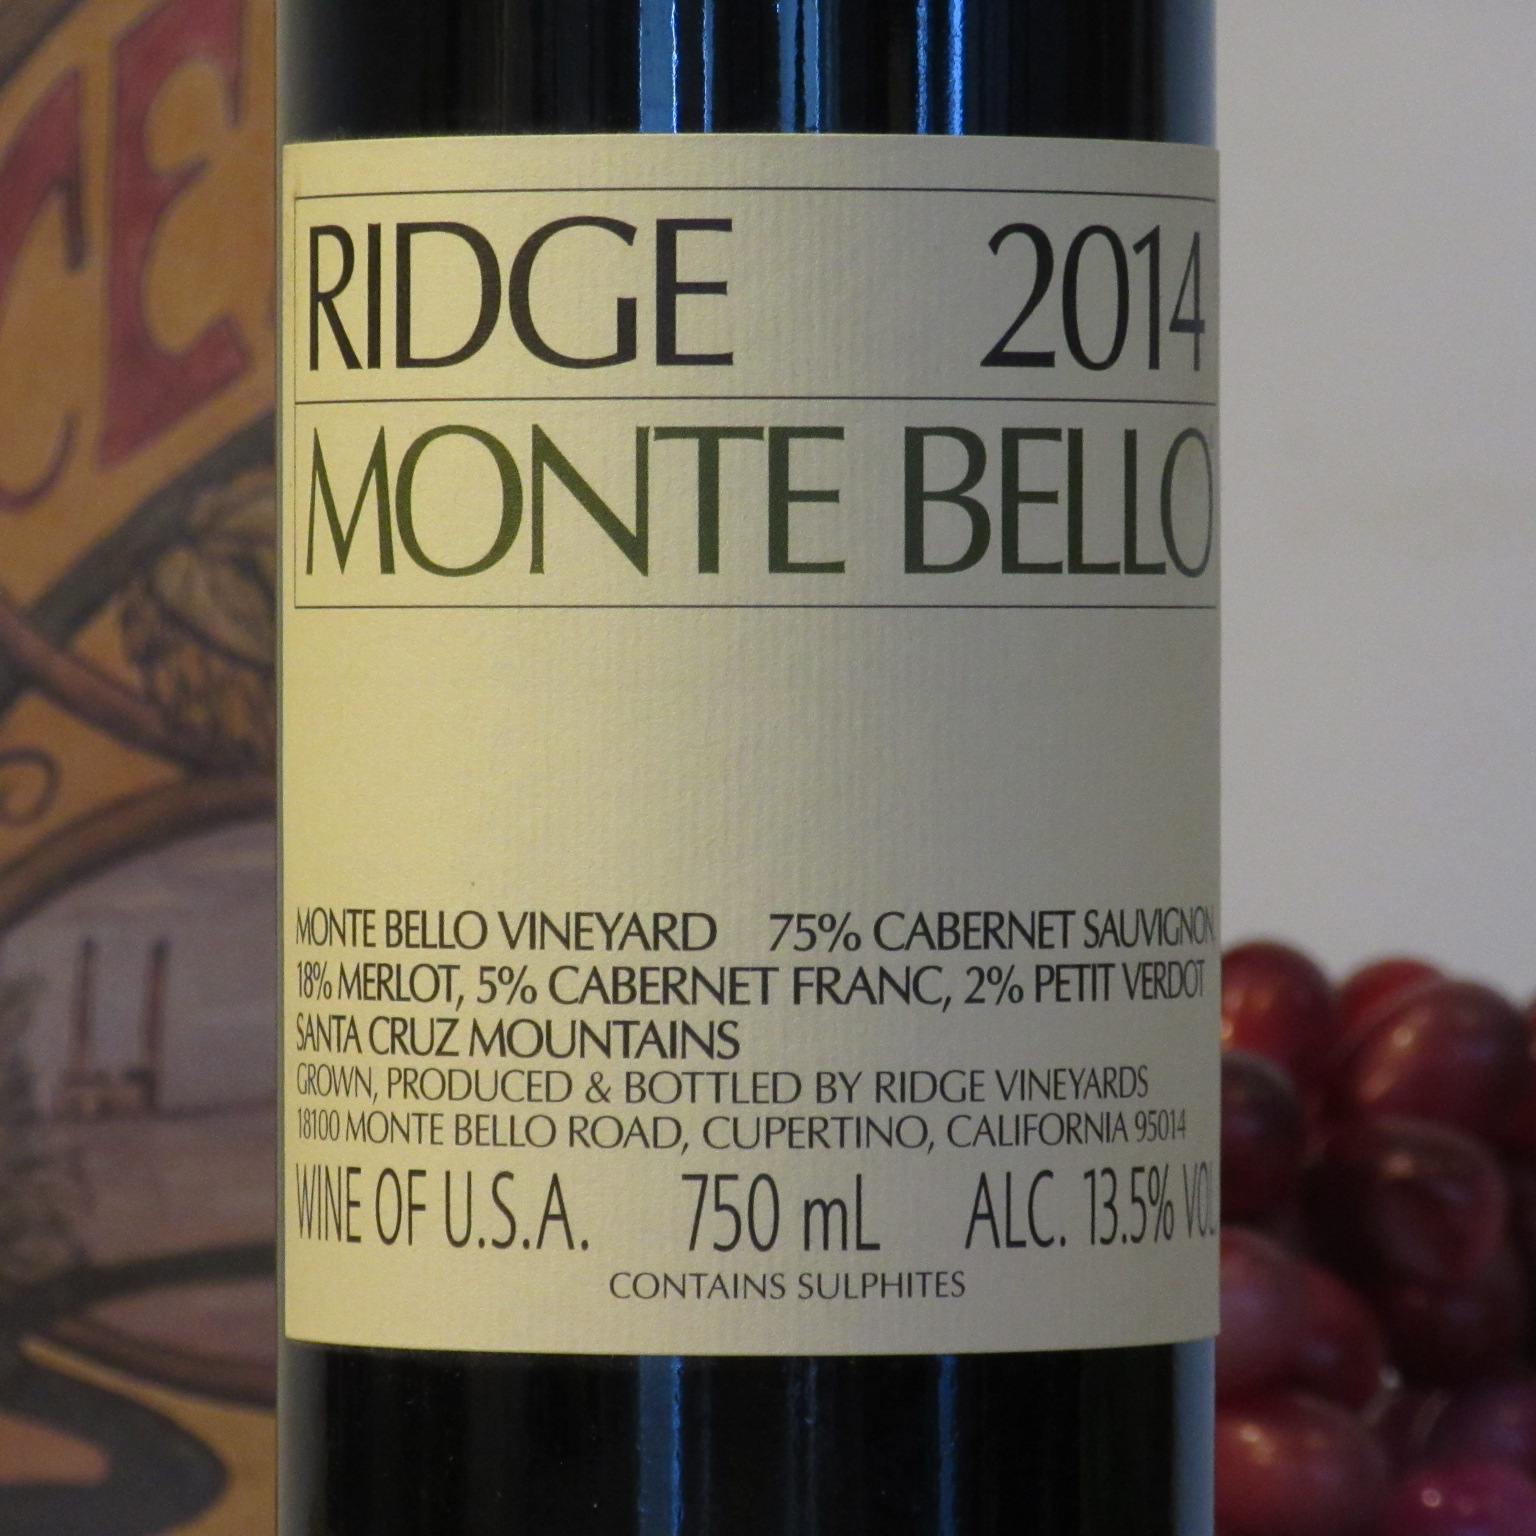 Ridge Monte Bello 2014